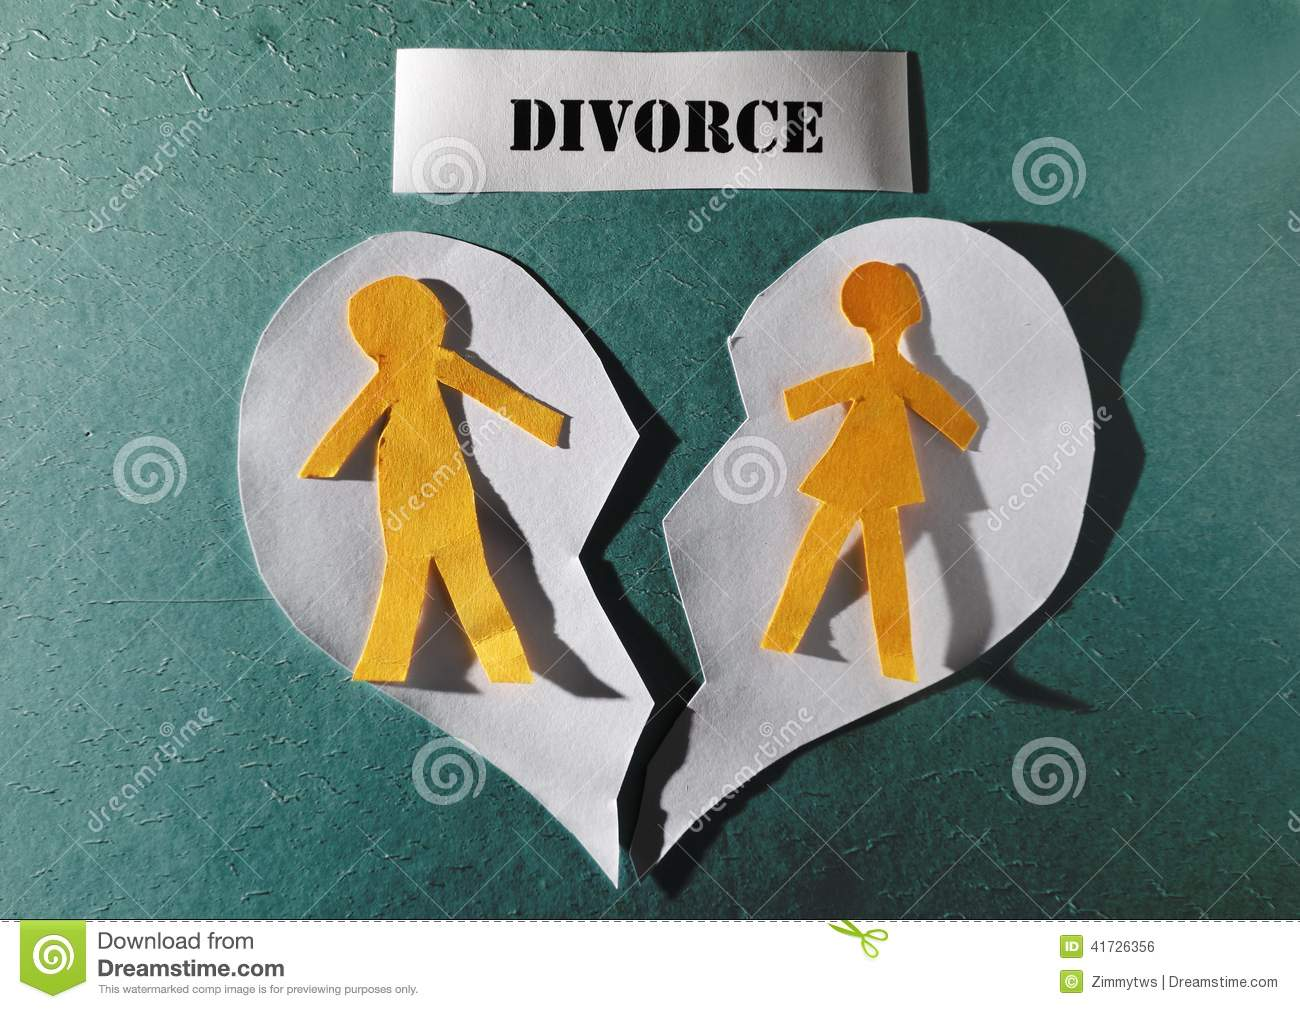 How are stock options split in a divorce